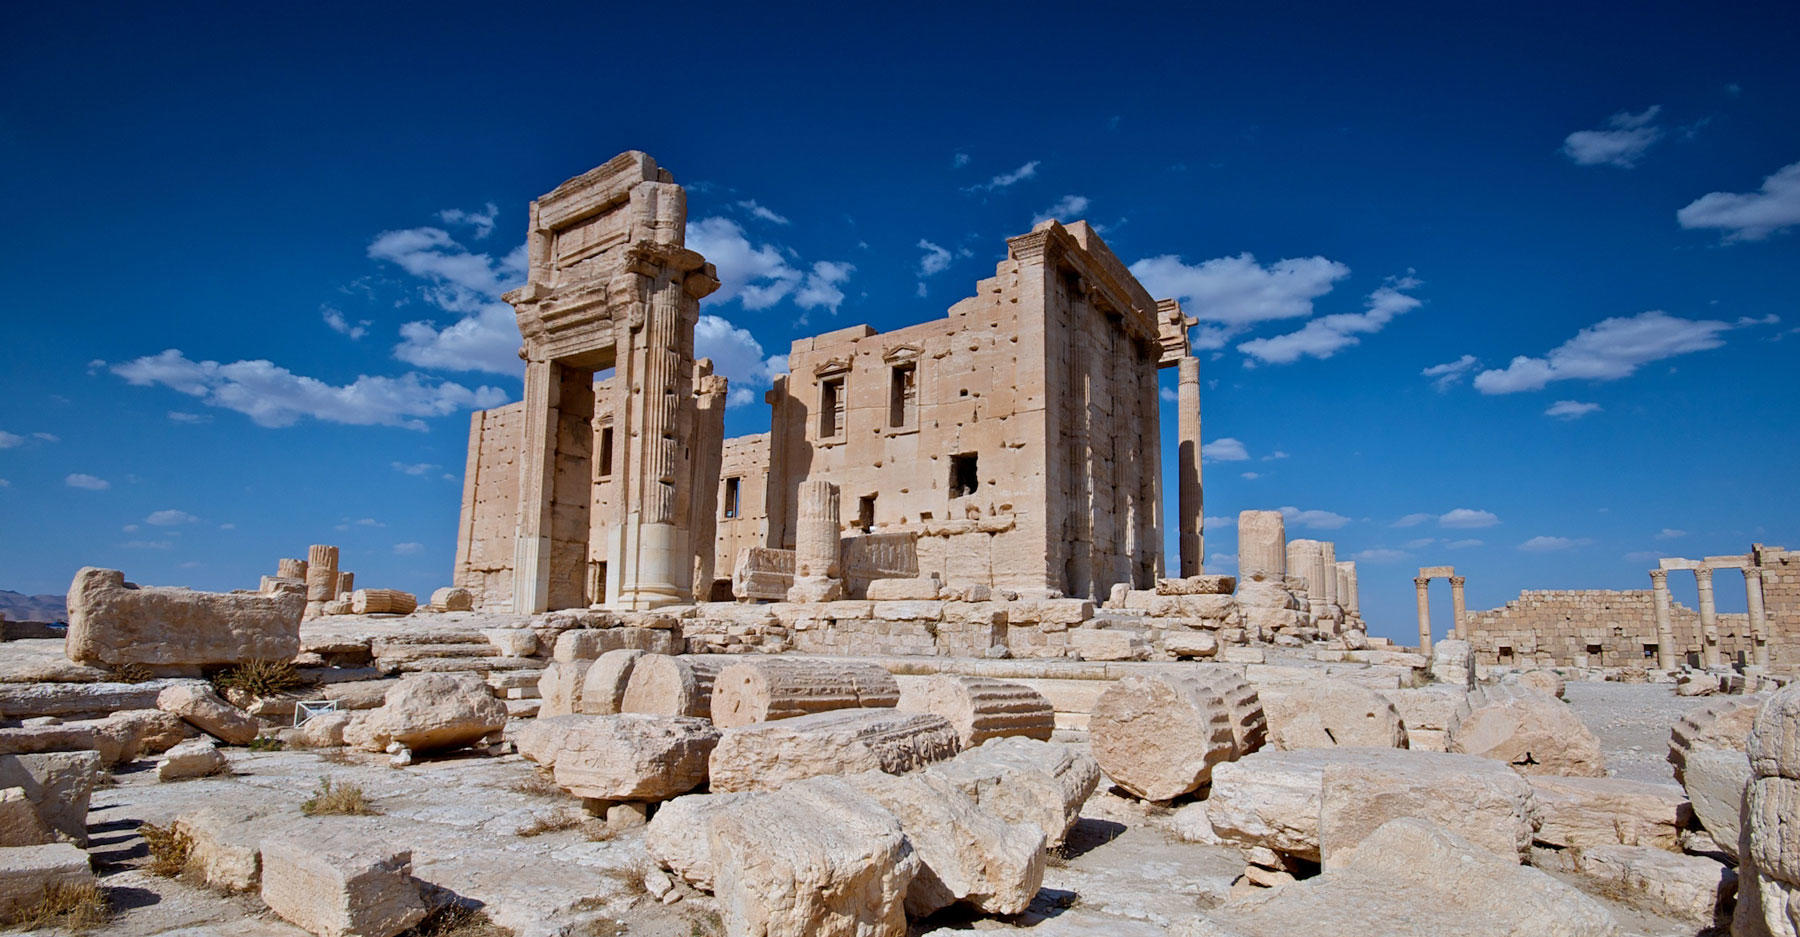 Temple of Bel in Syria